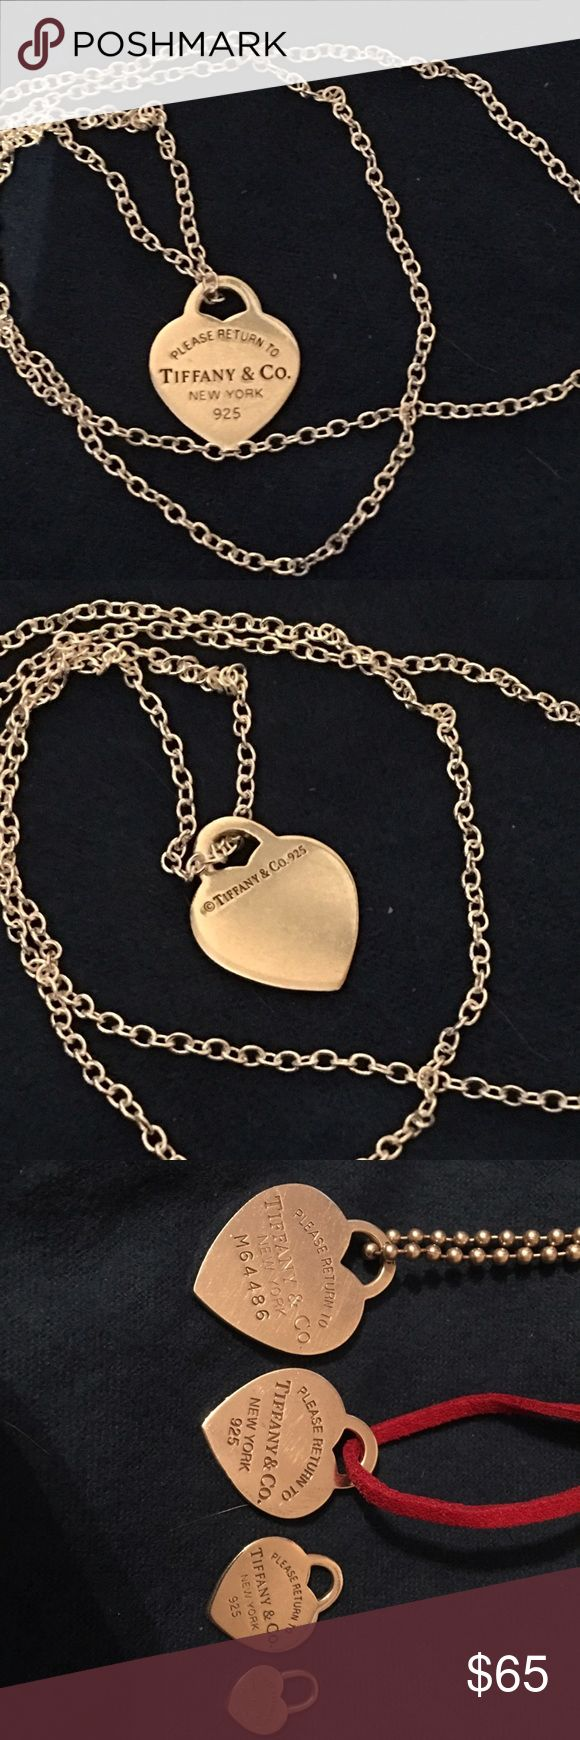 Medium Tiffany heart necklace This is the medium please return to Tiffany necklace. There are sizes in the photo. extra large, large, medium, and mini. This is the medium. I hung it in a 22 inch sterling silver chain. The price is the same with or without the chain. Awesome condition. Please see all of my amazing deals by clicking on my page. Tiffany & Co. Jewelry Necklaces